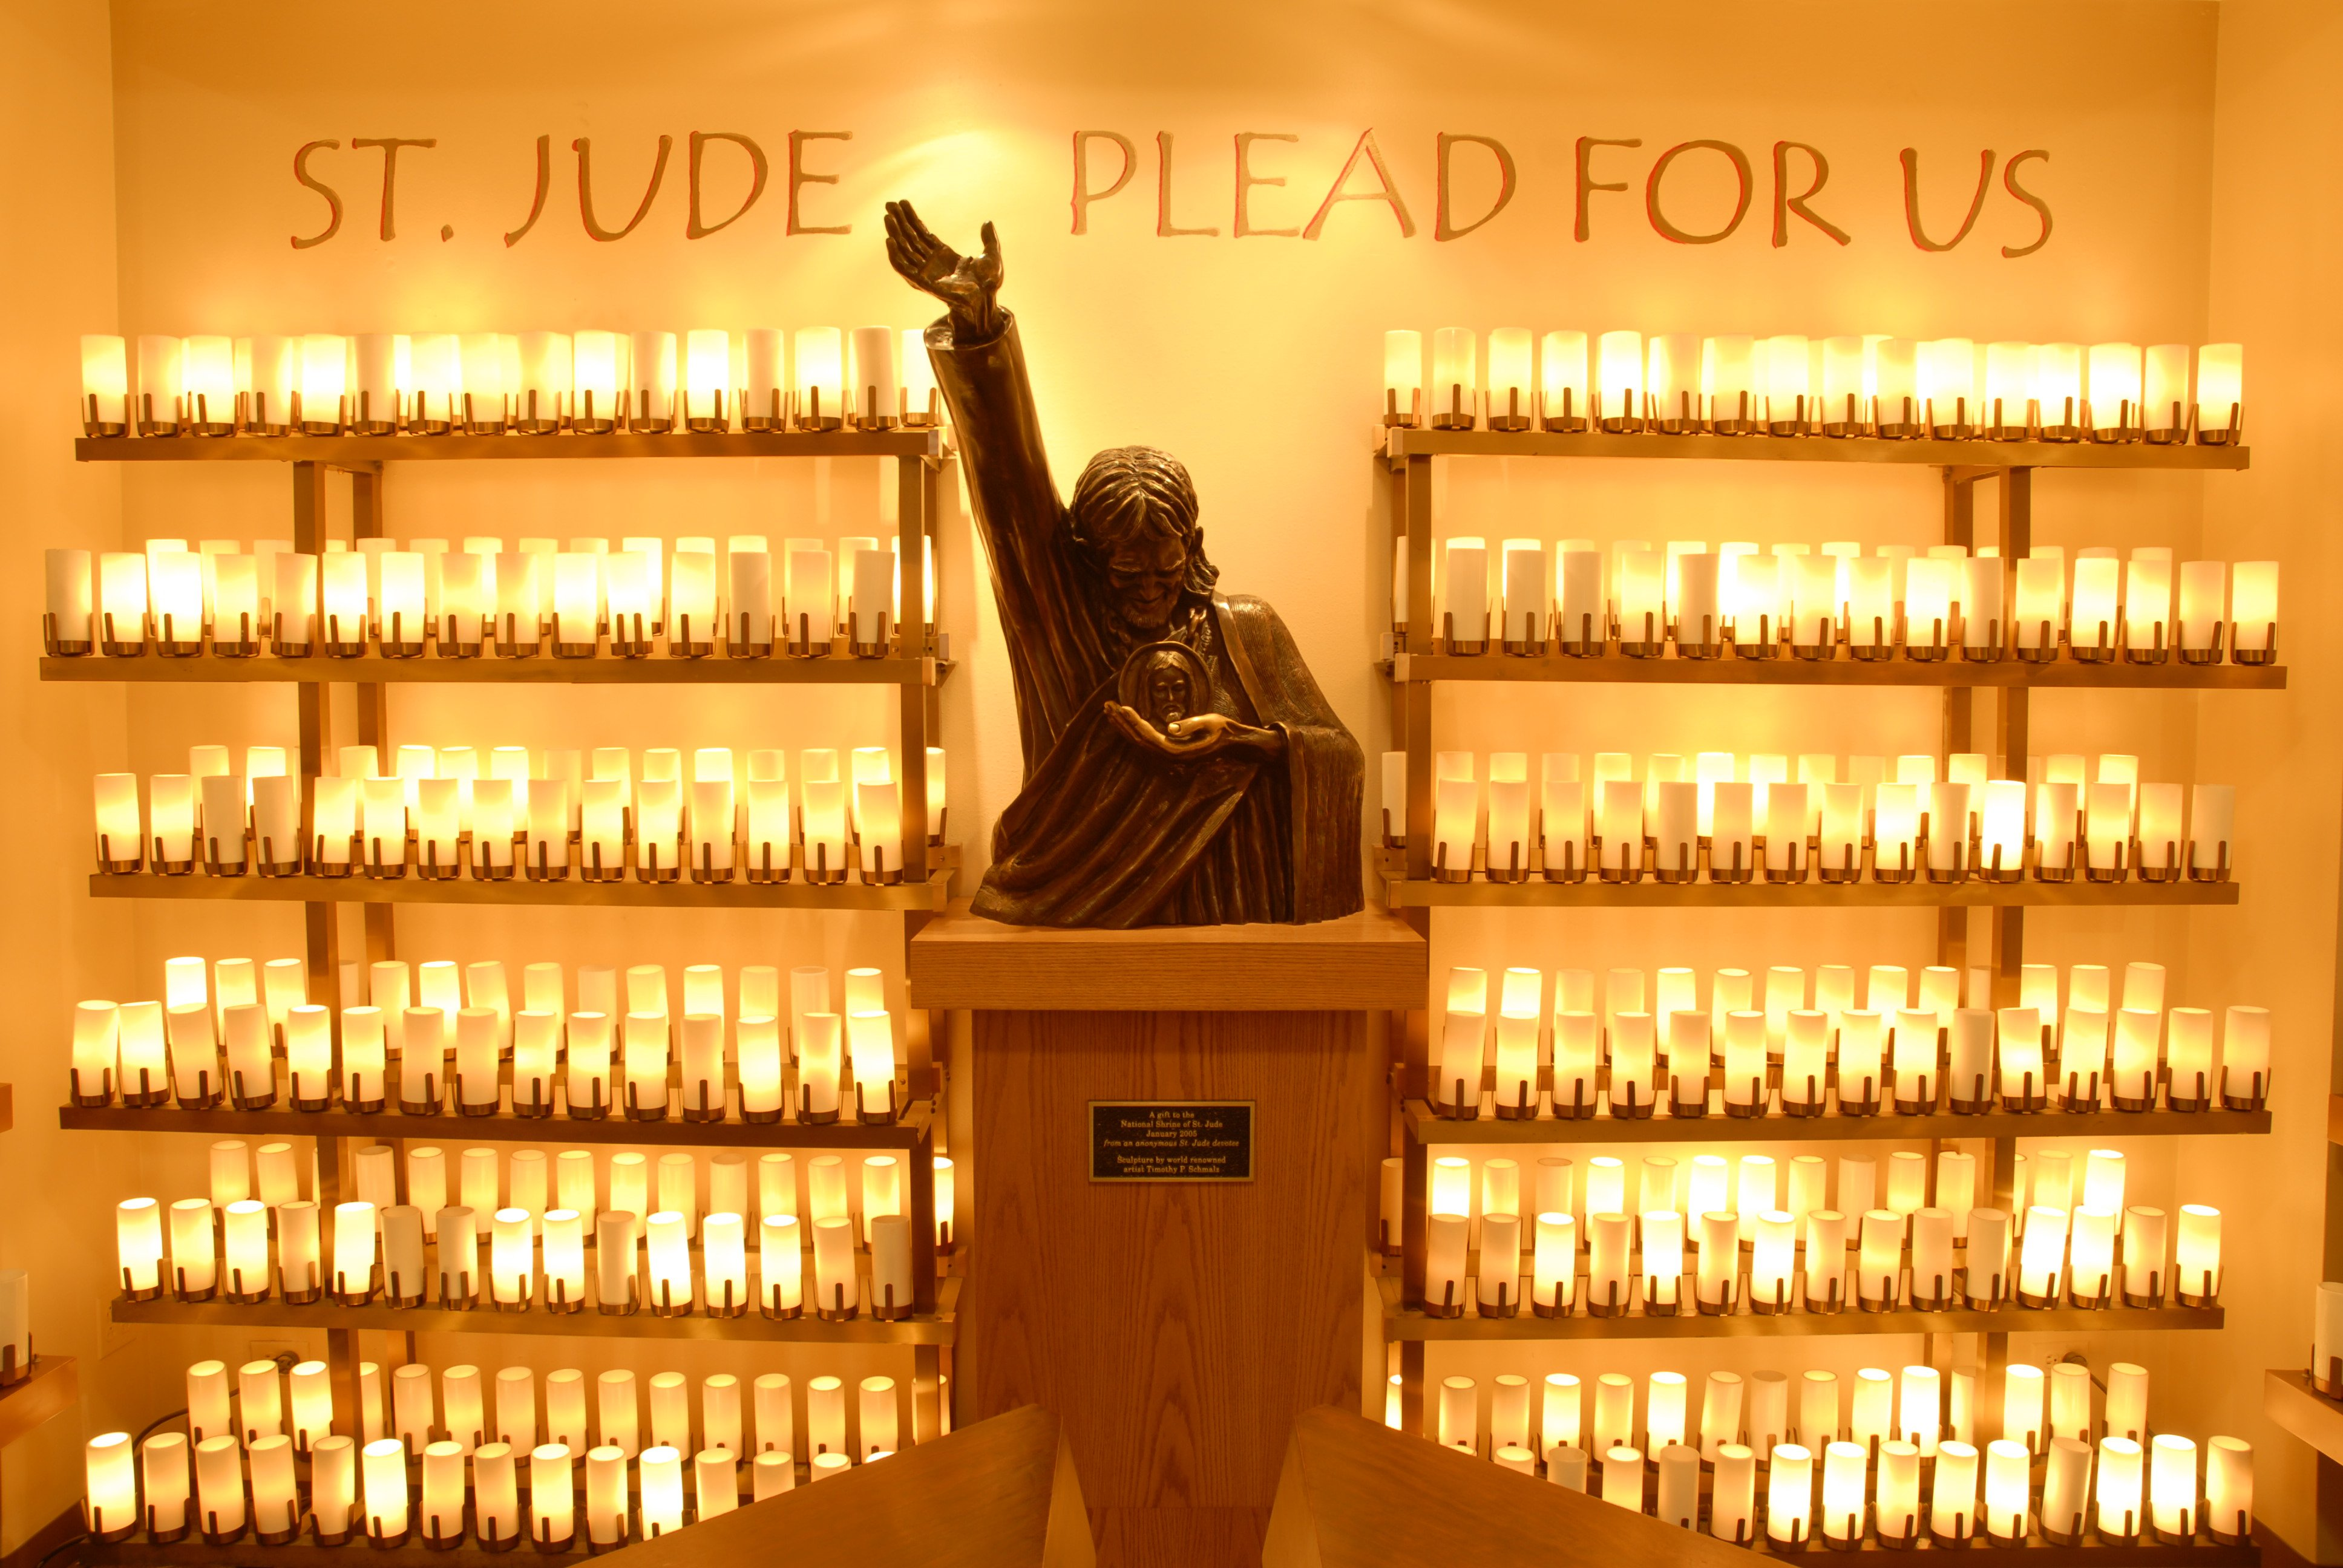 The shrine to Saint Jude itself, a saint thought to be important for addressing particularly trying times and hopeless causes.